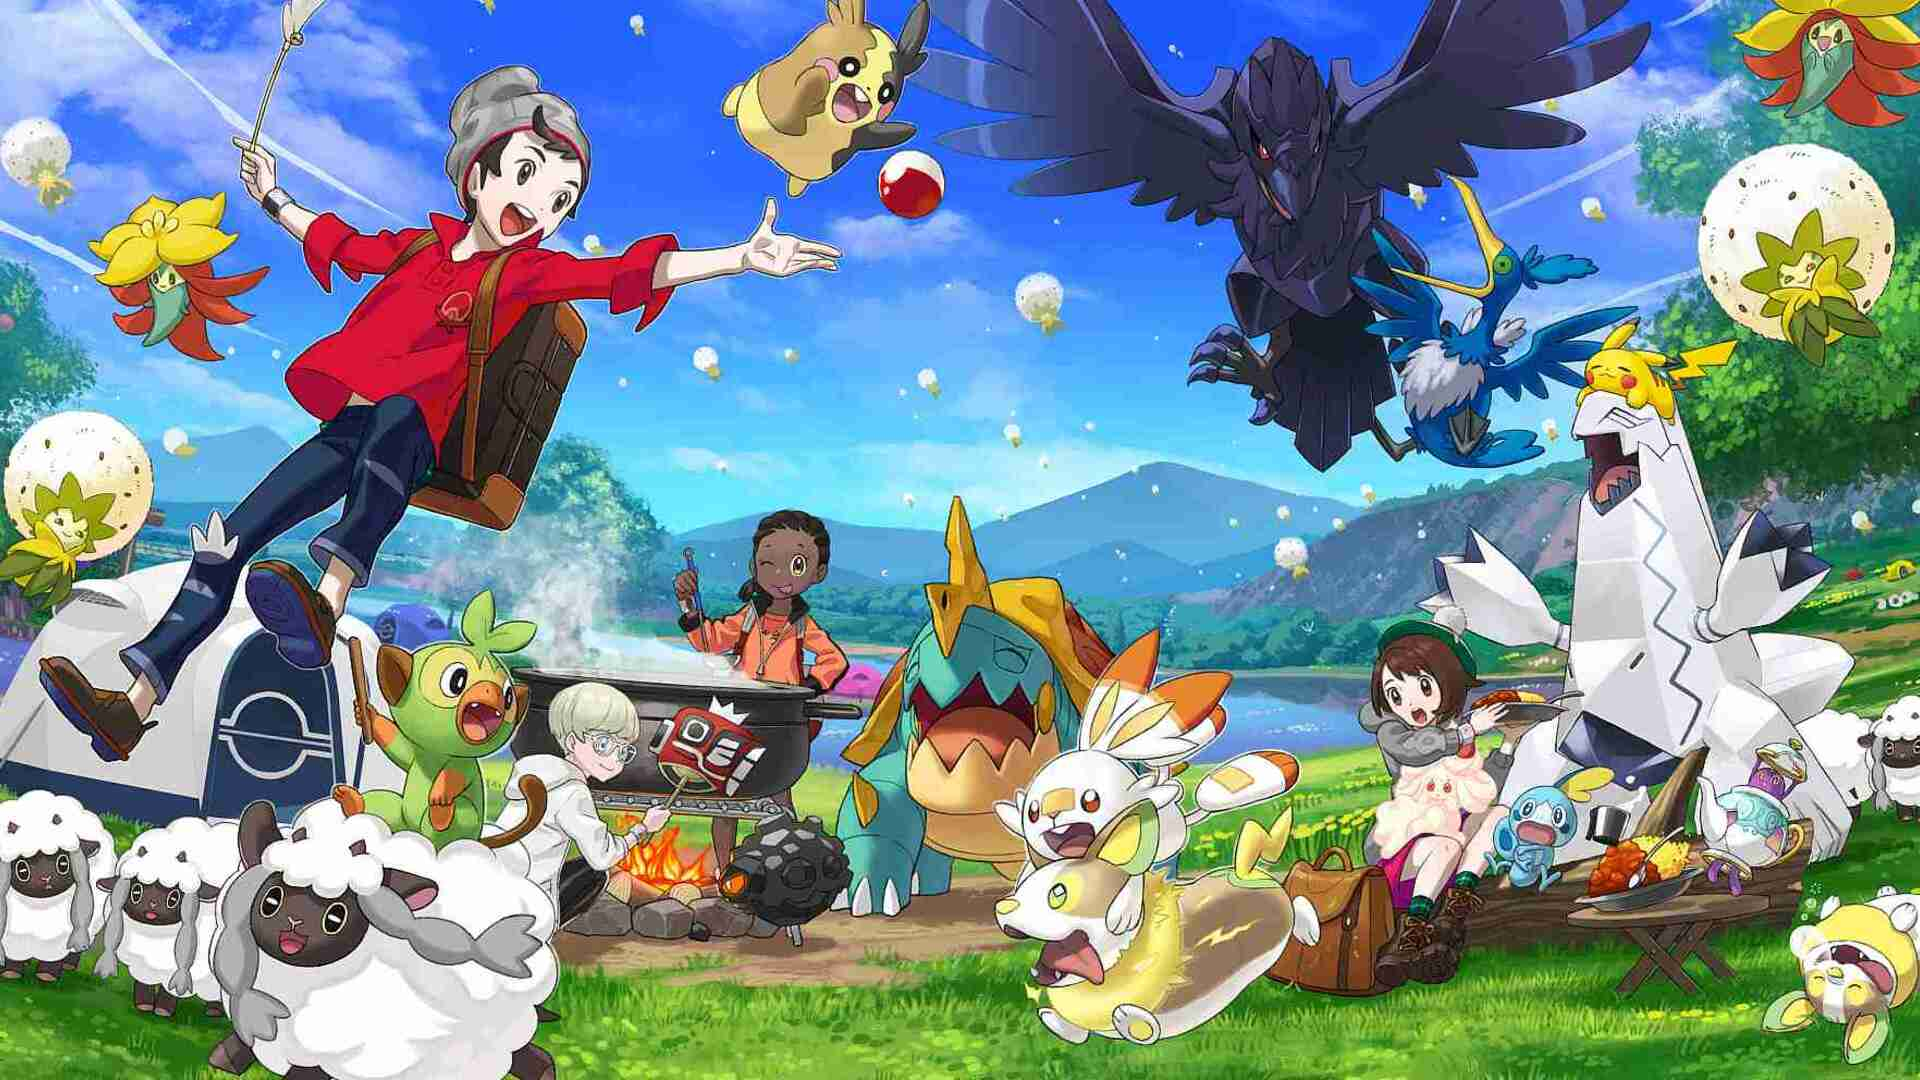 Pokemon Sword and Shield is Lovely and Warm, but Not a Next-Gen Pokemon Game